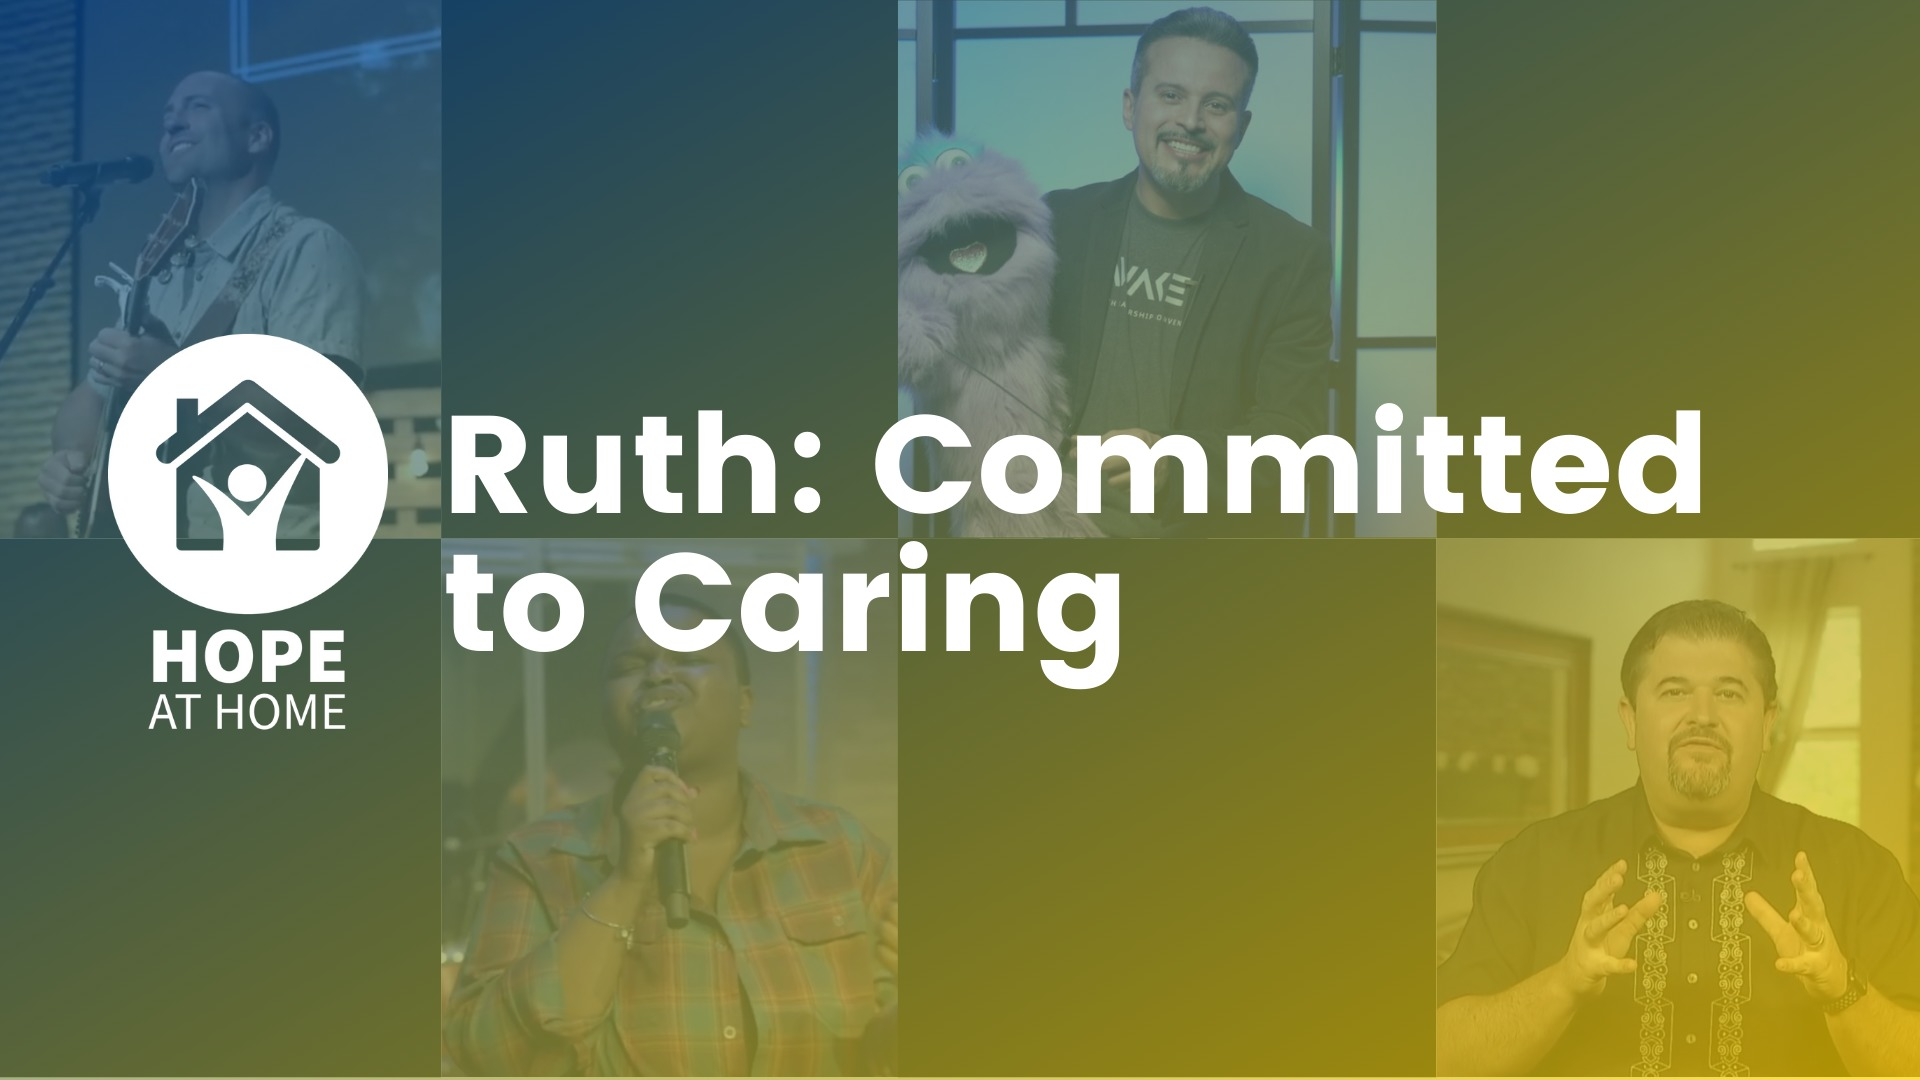 Ruth: Committed to Caring